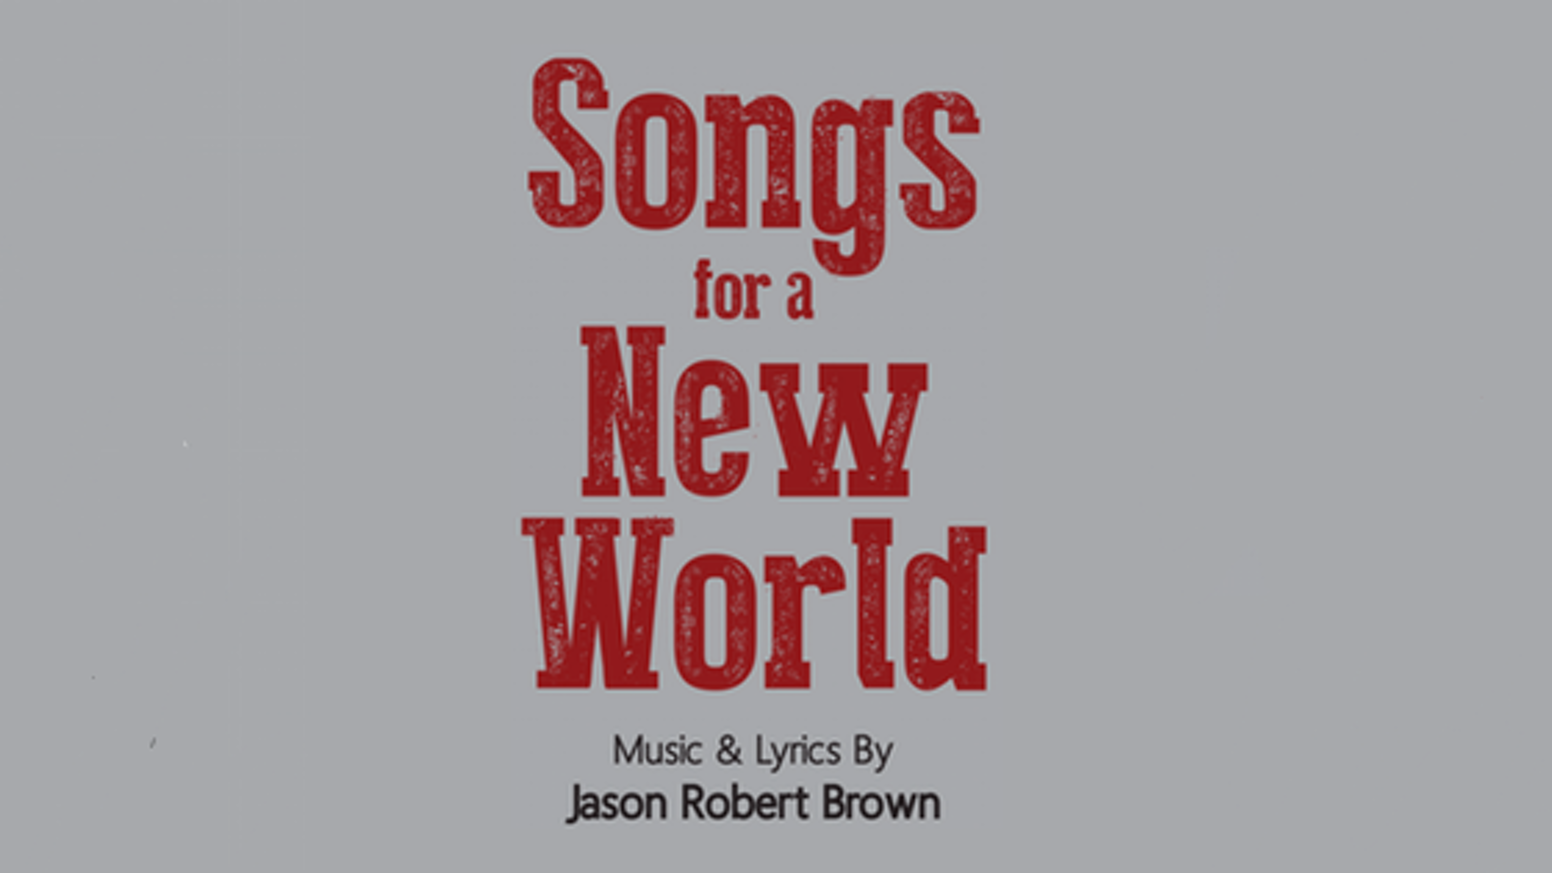 Songs for a New World by Musical Theatre Productions